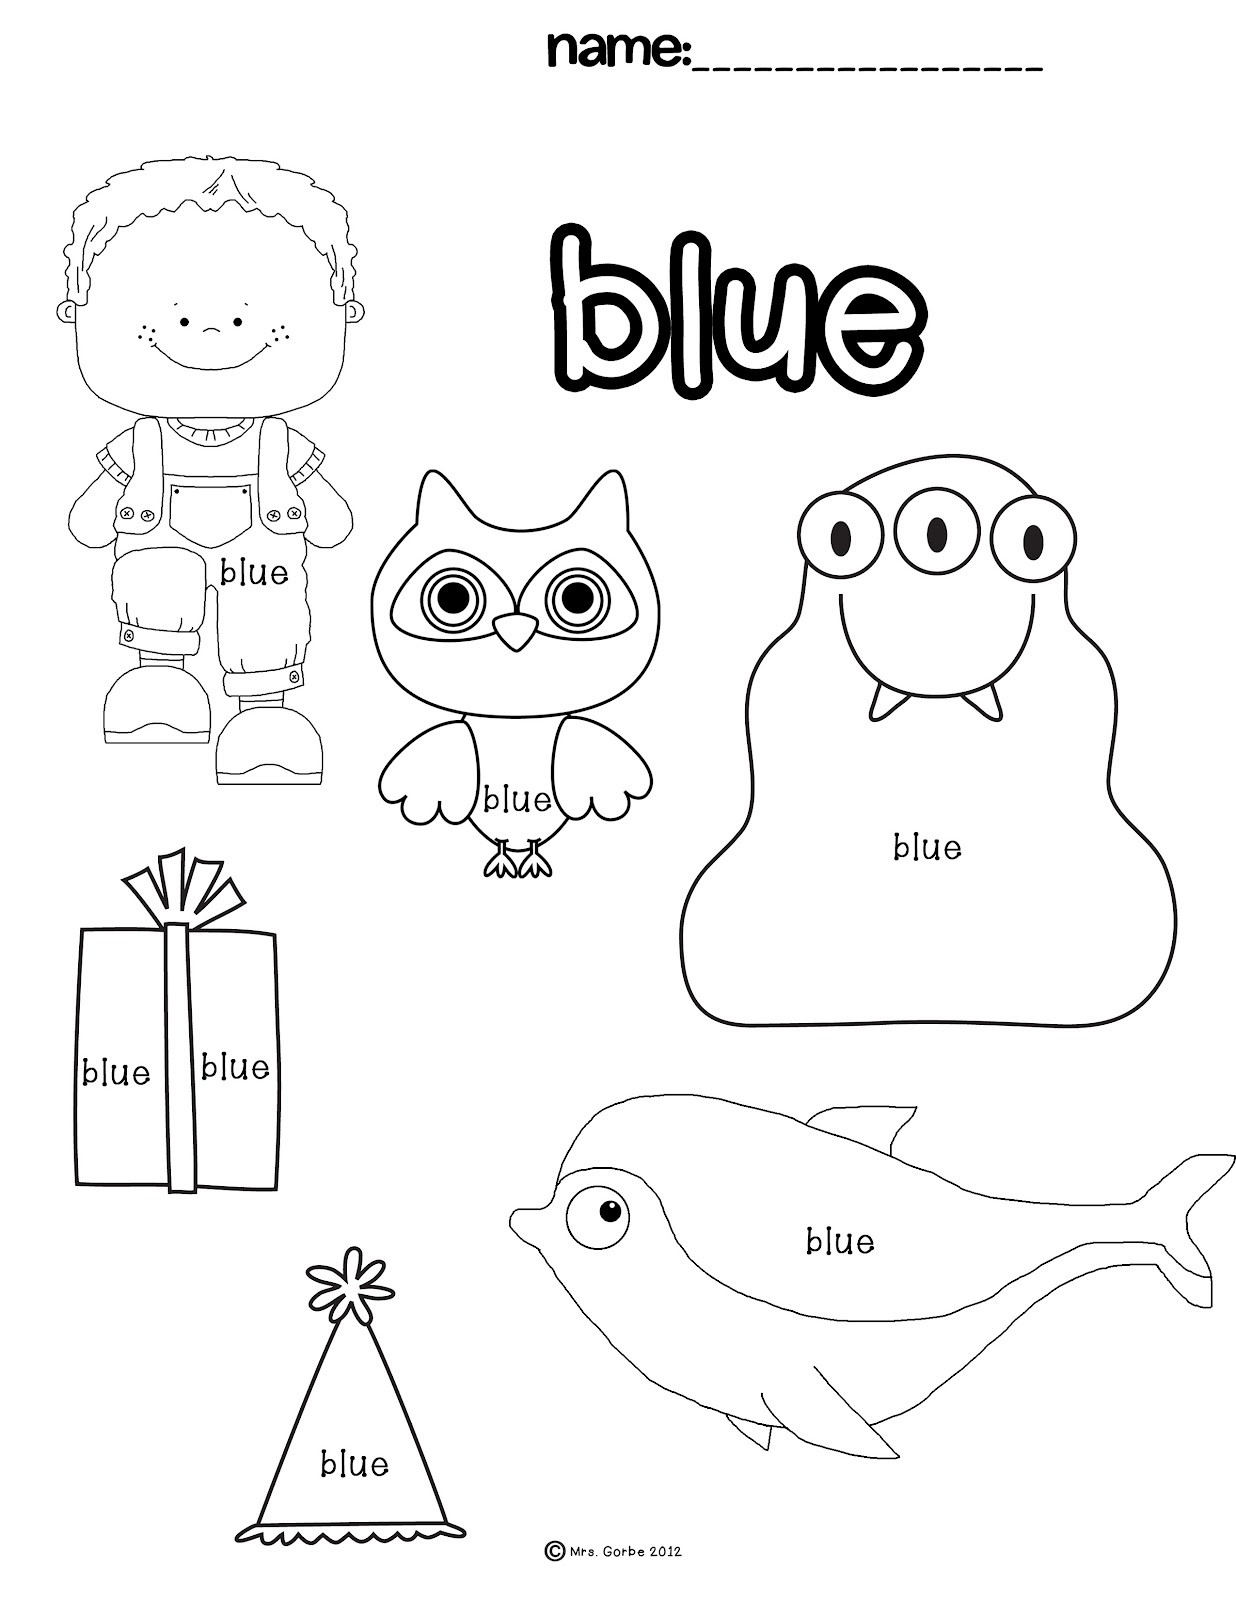 Best ideas about Free Printable Coloring Sheets For Preschoolers On The Color Blue . Save or Pin Blue Color Worksheets Preschool Now.